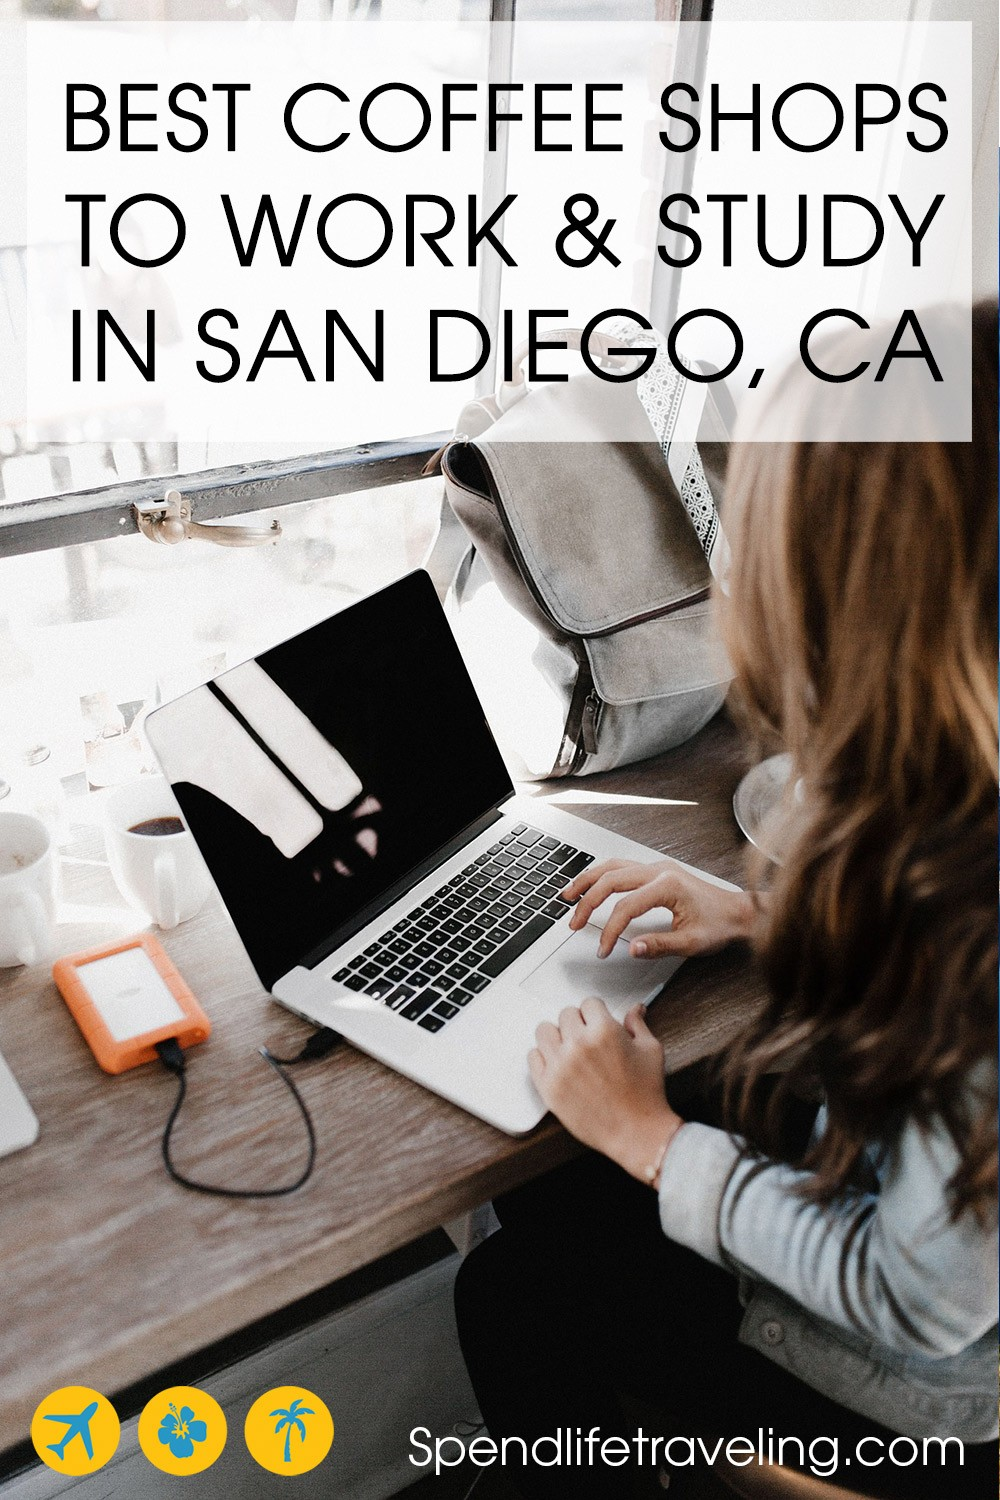 8 Best Coffee Shops To Work / Study in San Diego. Do you need to get some work done or are you looking for places to study in San Diego? Don't settle for a Starbucks, check out these great coffee shops in San Diego with good coffee and wifi that make great locations for working or studying! #SanDiego #digitalnomad #workremotely #workonline